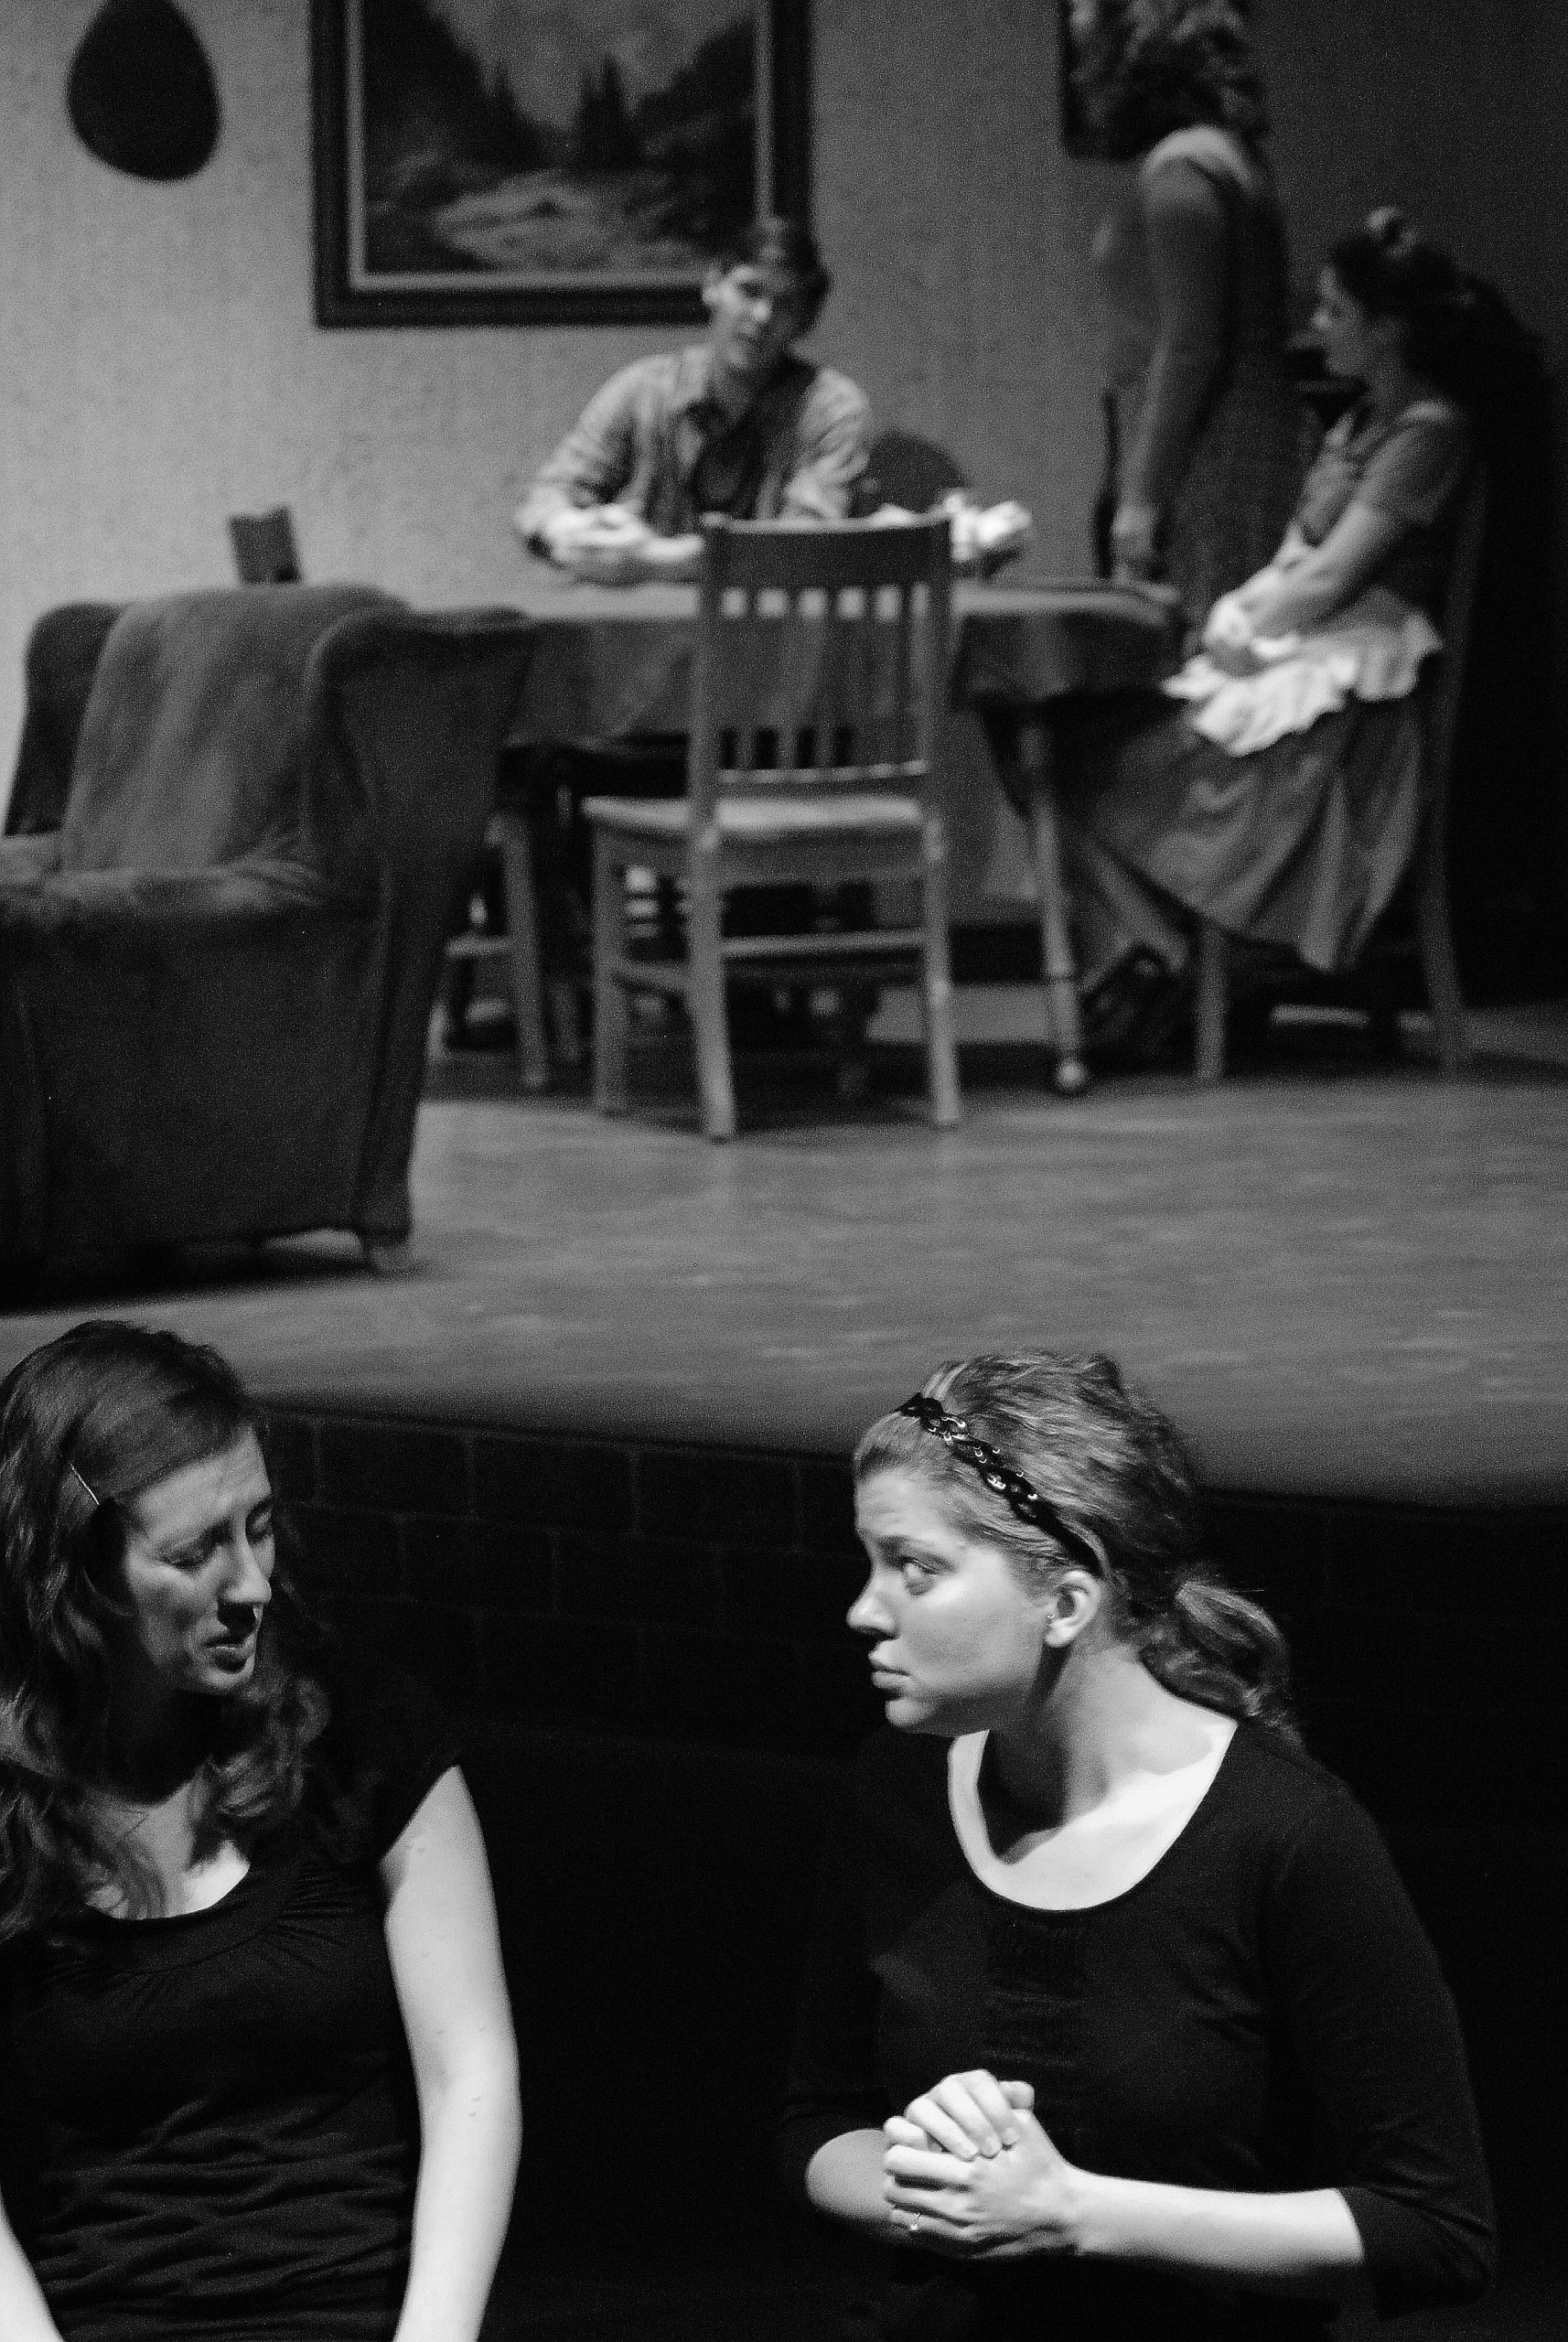 Black and white image of two ASL interpreters sitting on the edge of the Umble Center stage and interpreting the show taking place in the background